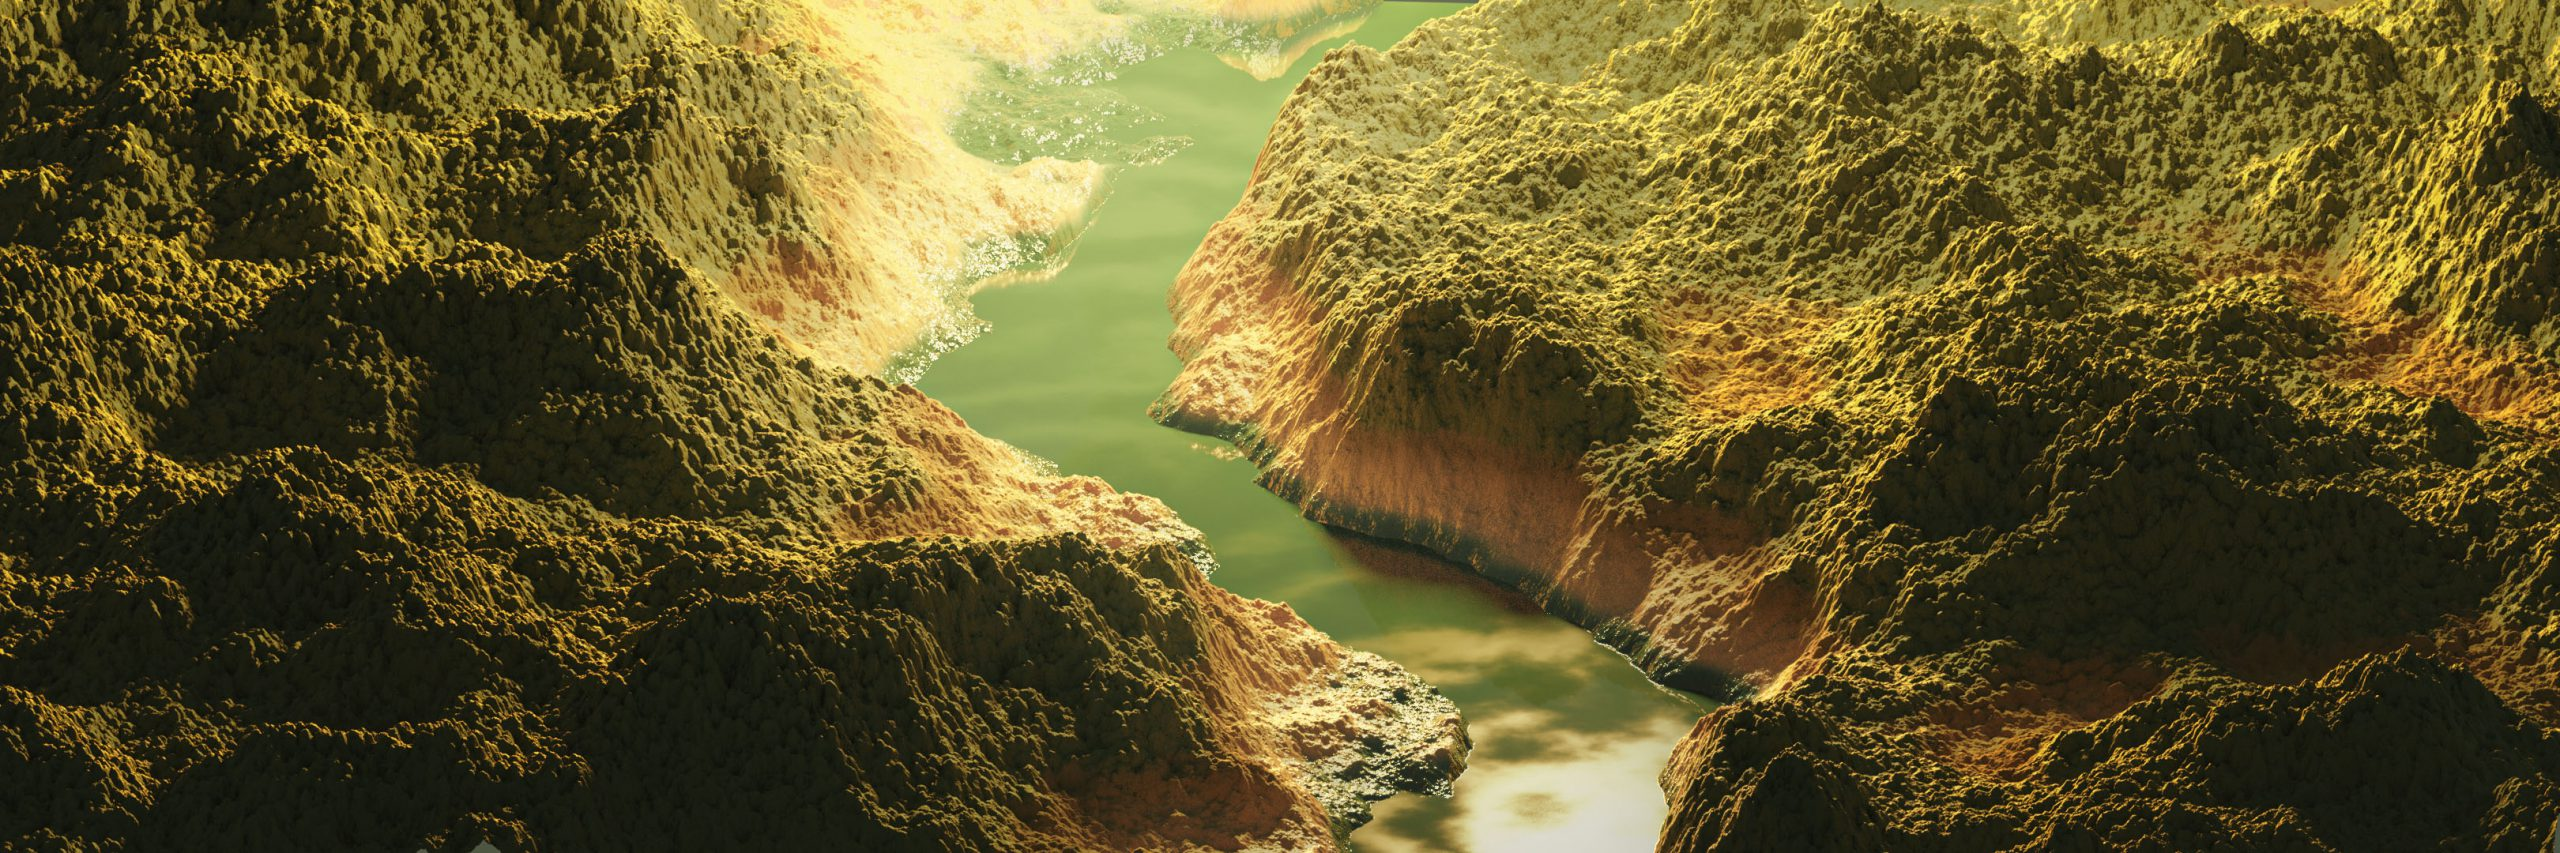 3d blender procedural landscape mountains river